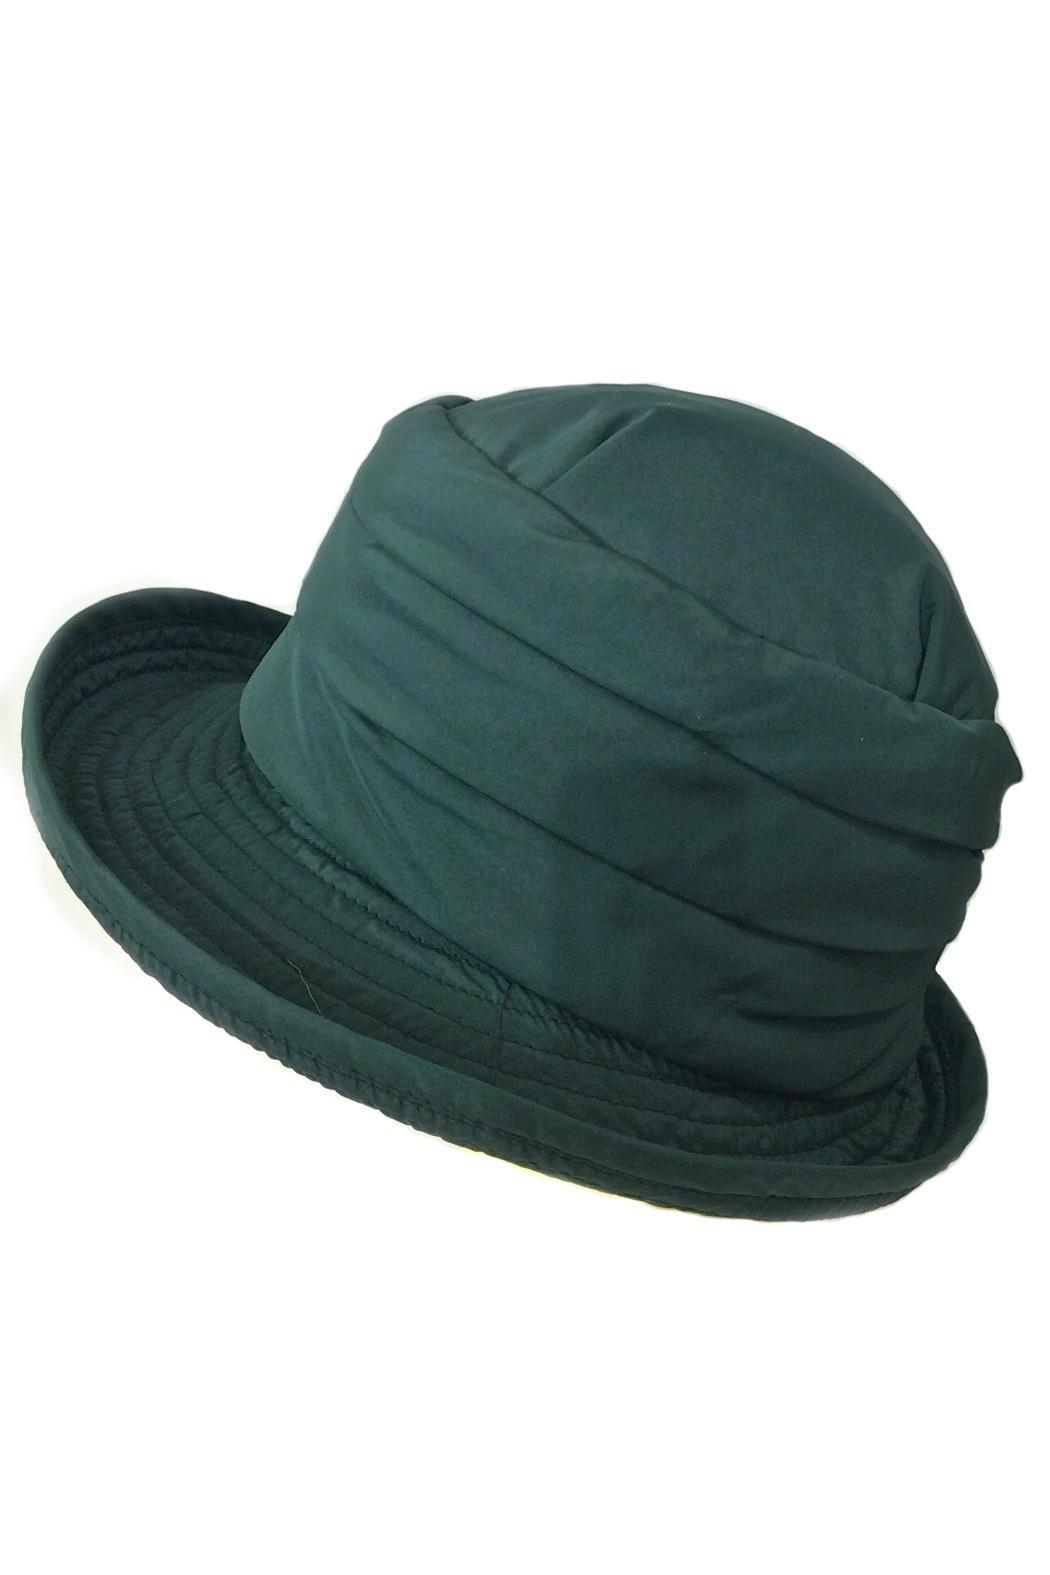 Grevi Solid Rain Hat from Portland by Moods of Florence — Shoptiques 7d5cf03653f4